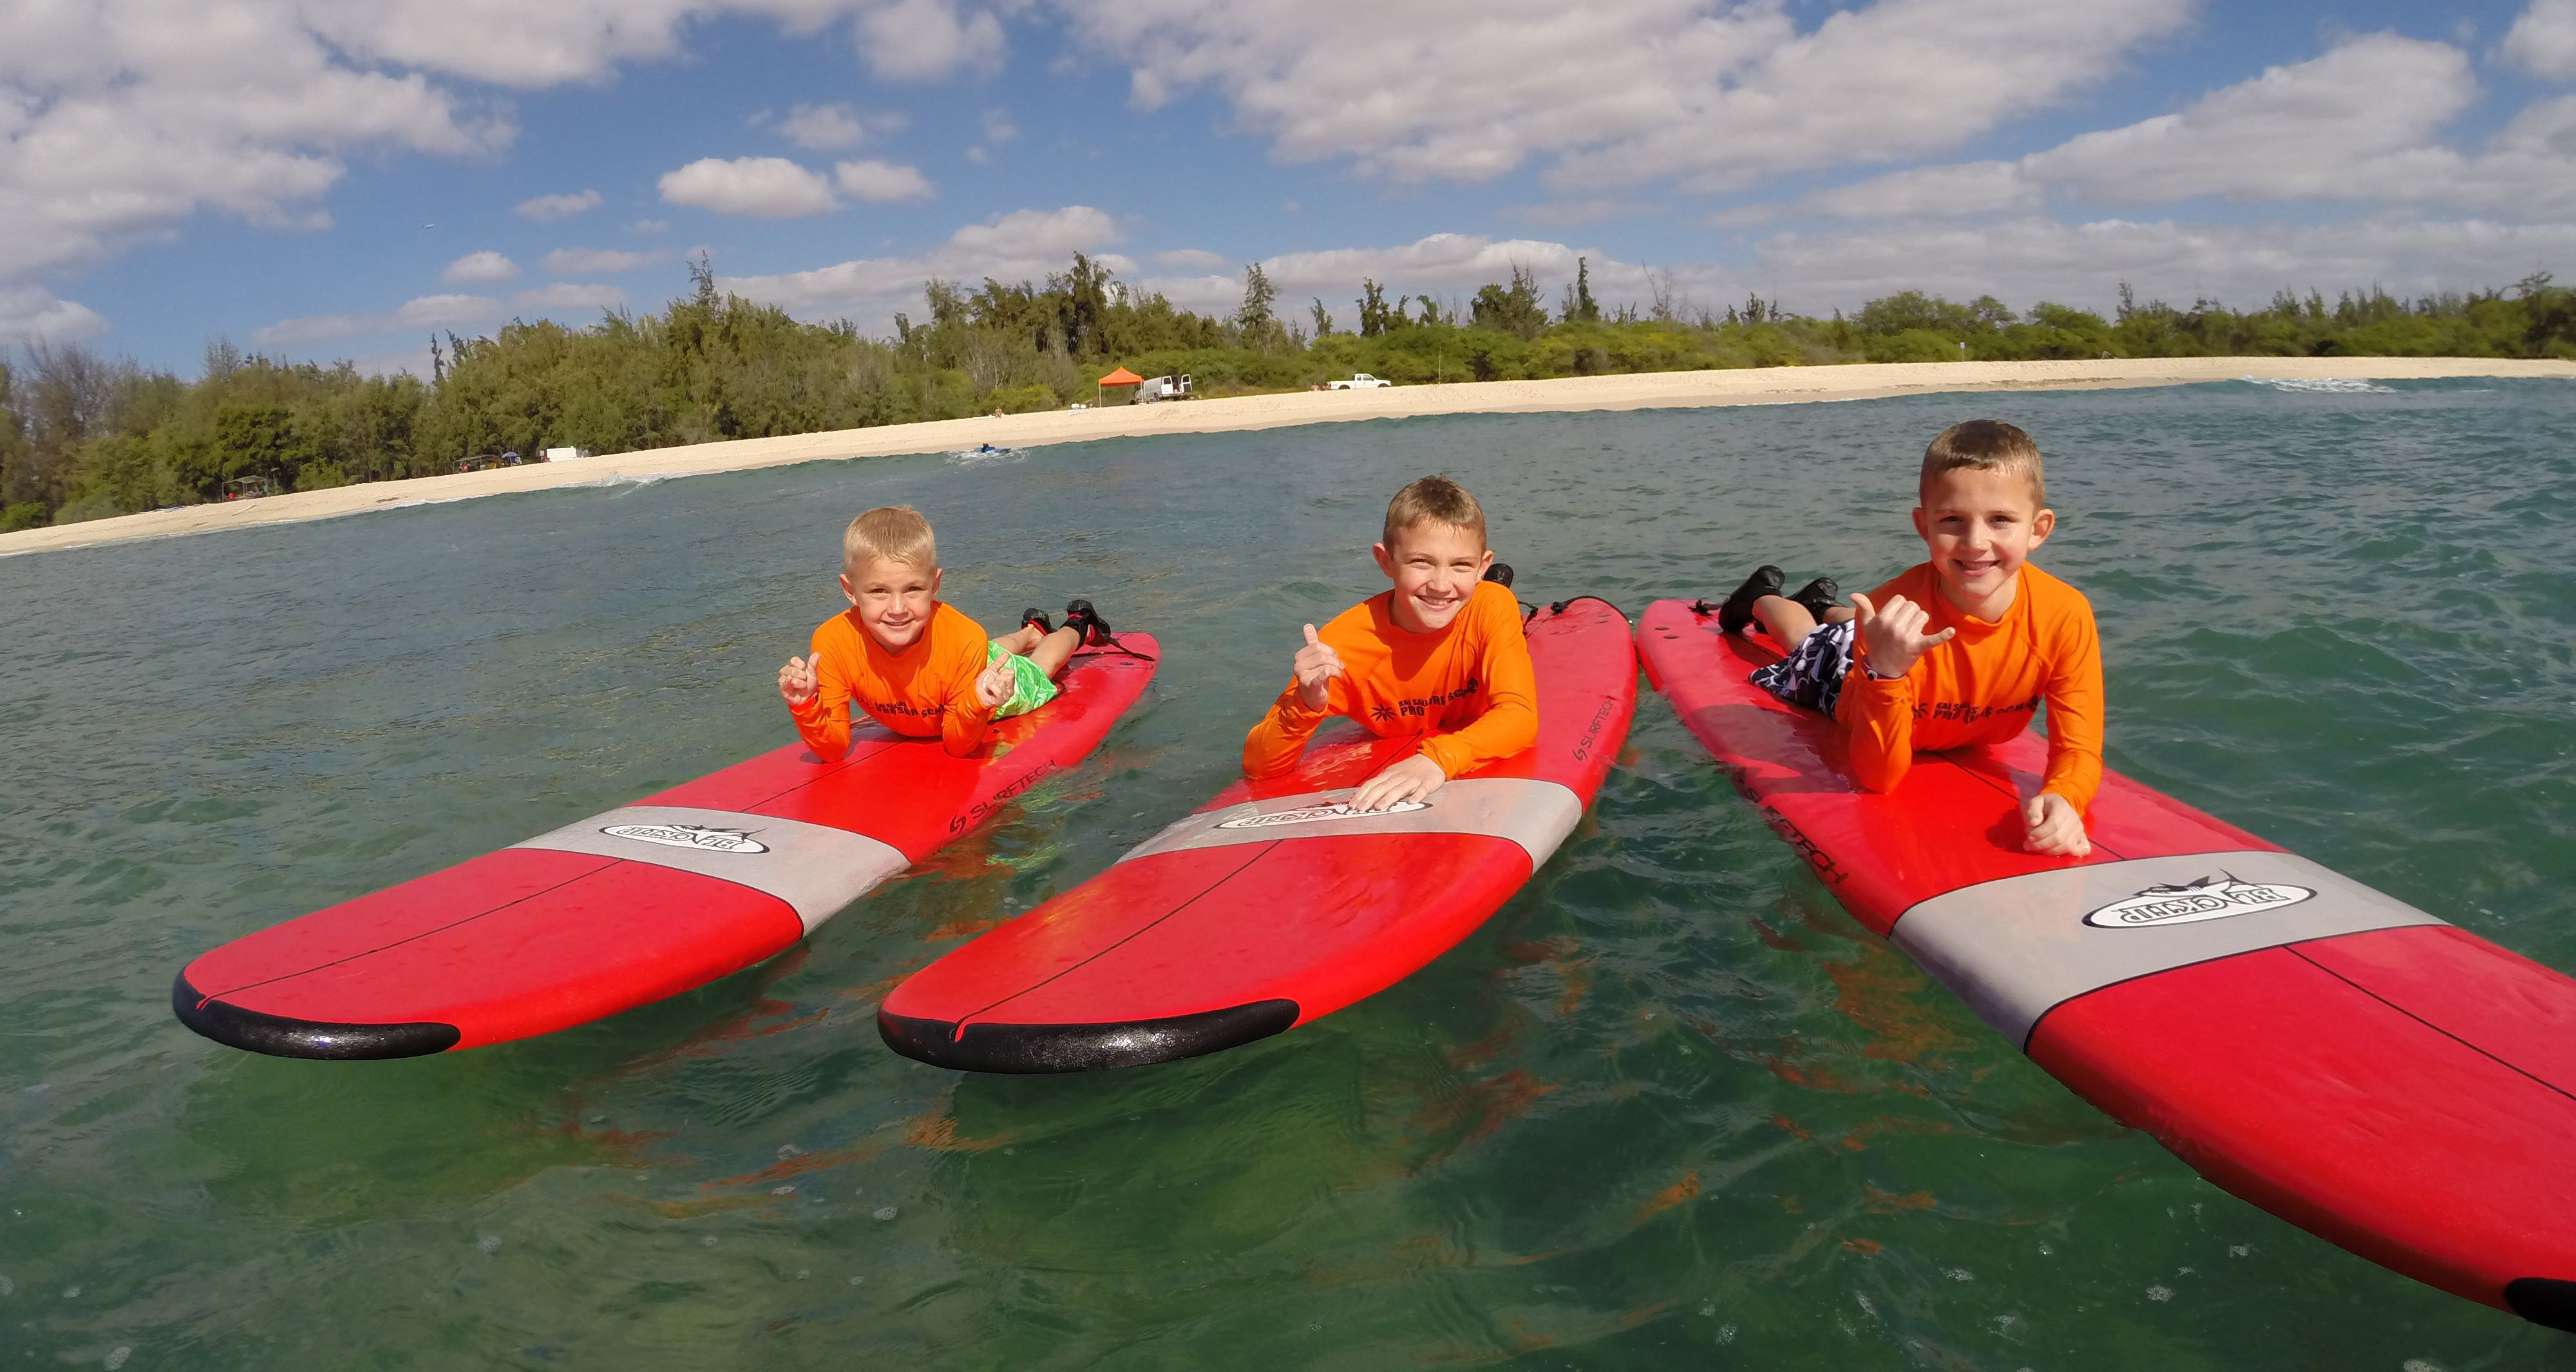 Three young boys give the hang loose hand sign as they lie on their bellies on surfboards floating in the ocean